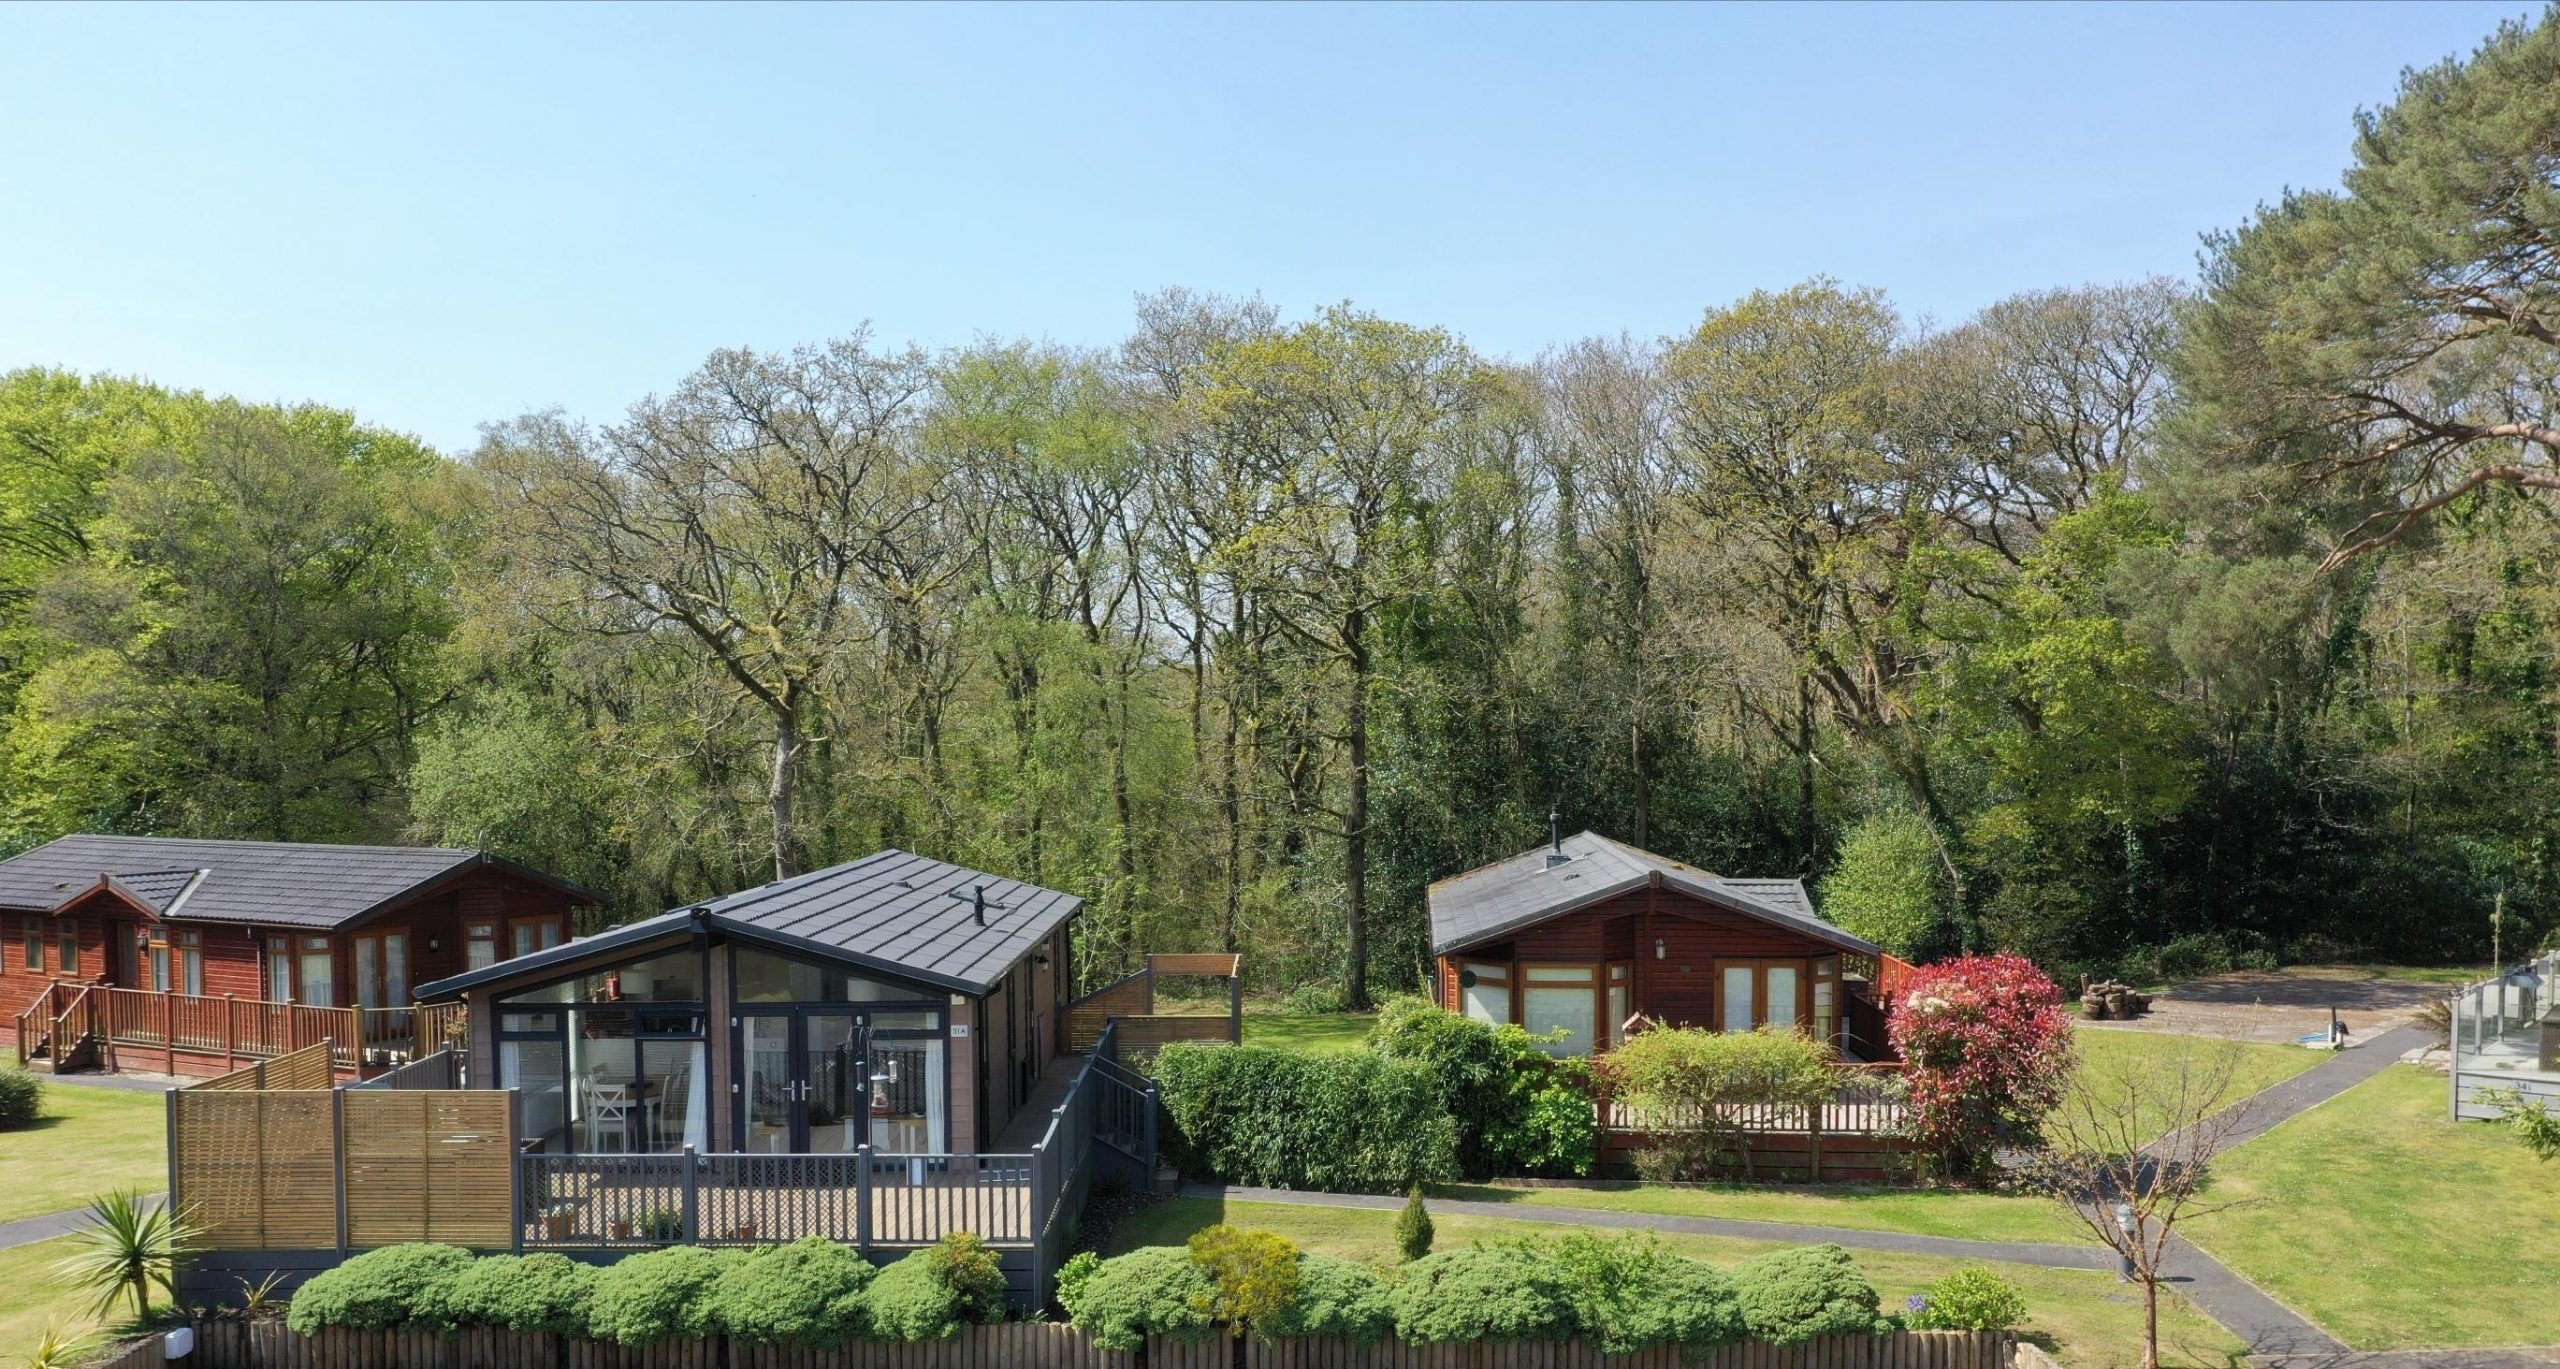 Holiday Lodges for Sale | Willow Bay Country Park External 3